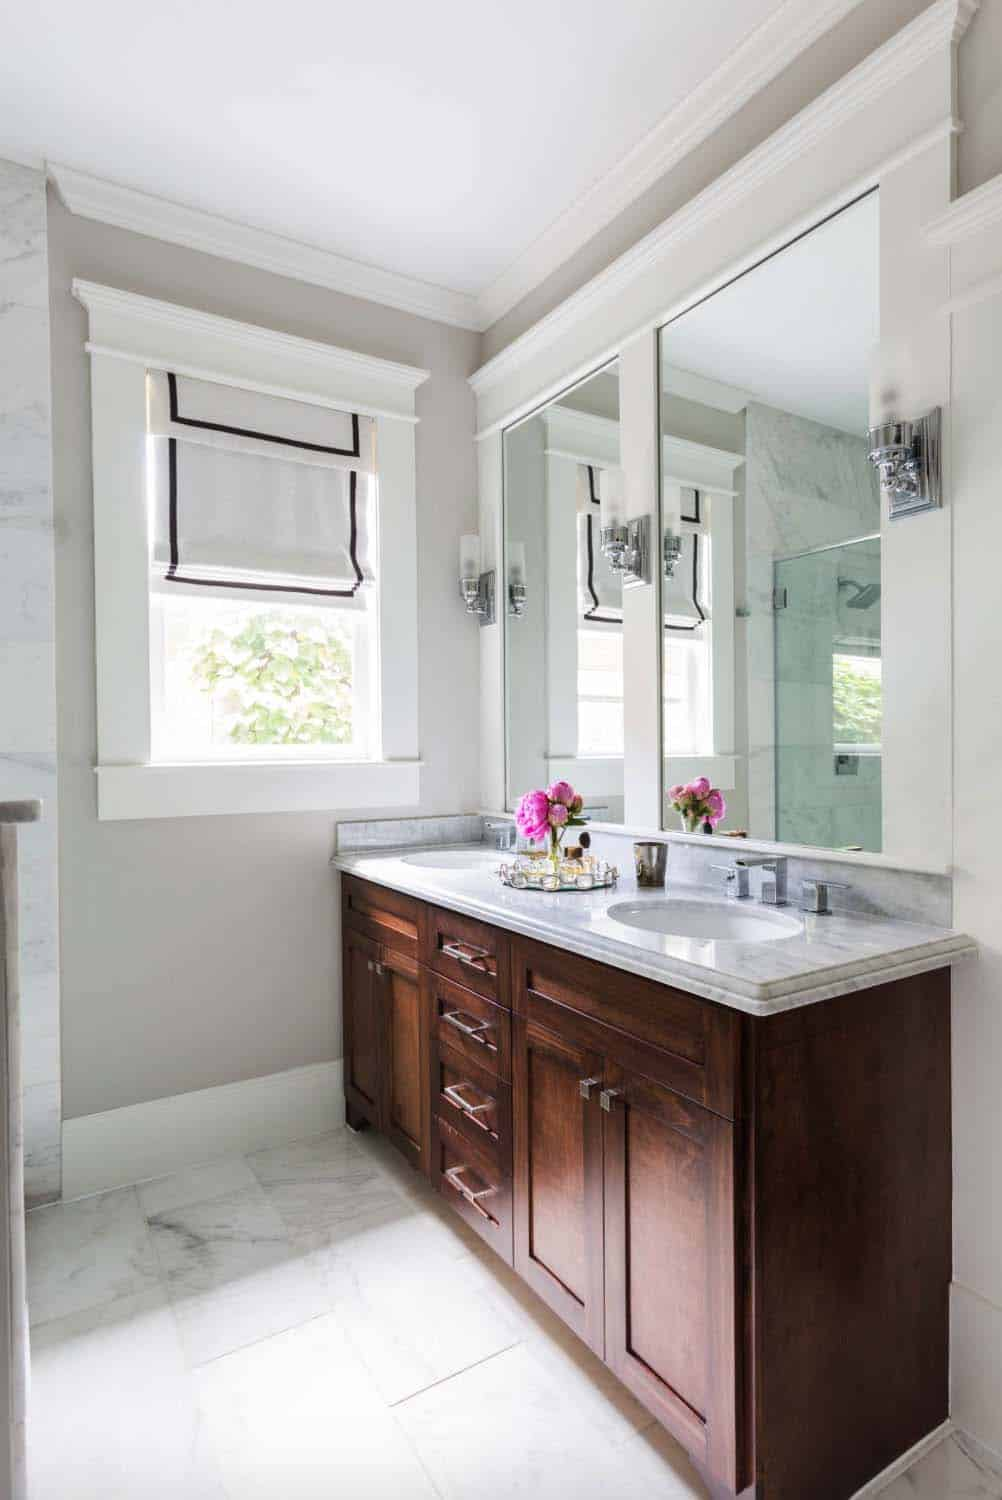 Style traditionnel Bungalow-Marie Flanigan Interiors-22-1 Kindesign